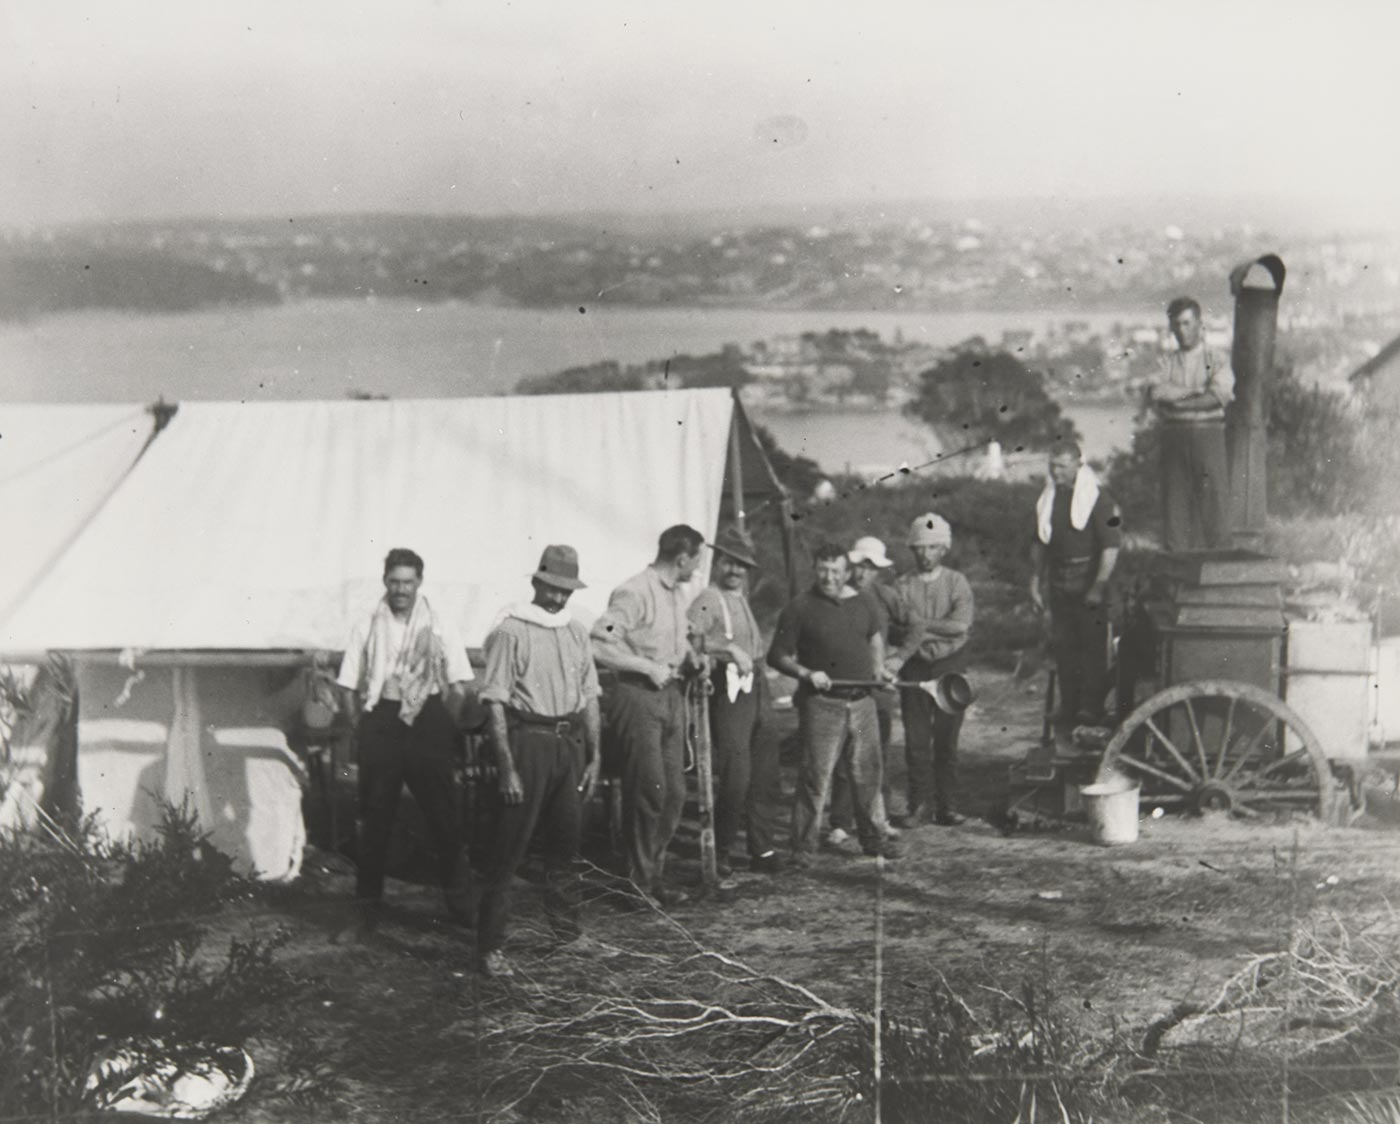 A black and white photograph of nine men standing outside a tent and next to a portable boiler. Some of the men have towels aroudn their necks and one is holding a long handled saucepan. Suburbs are visible on the headlands in the distance. - click to view larger image